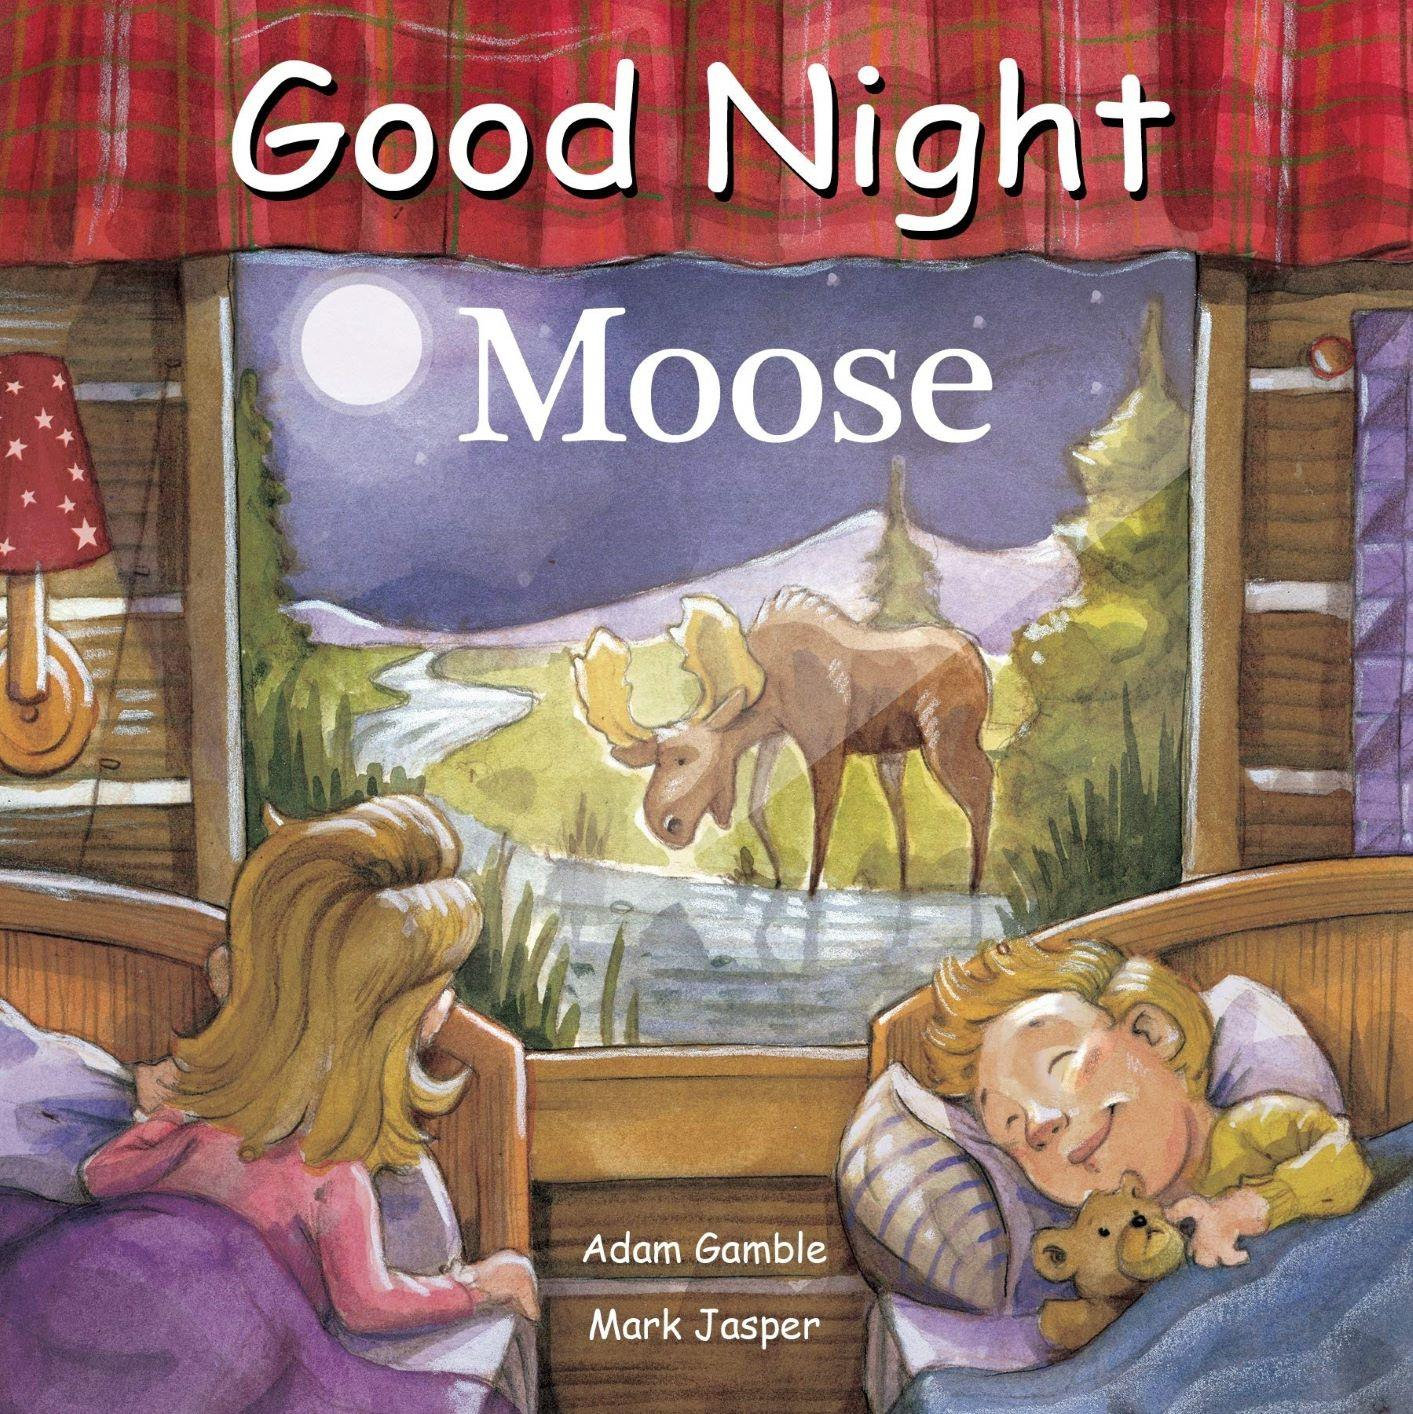 Goodnight Moose Book